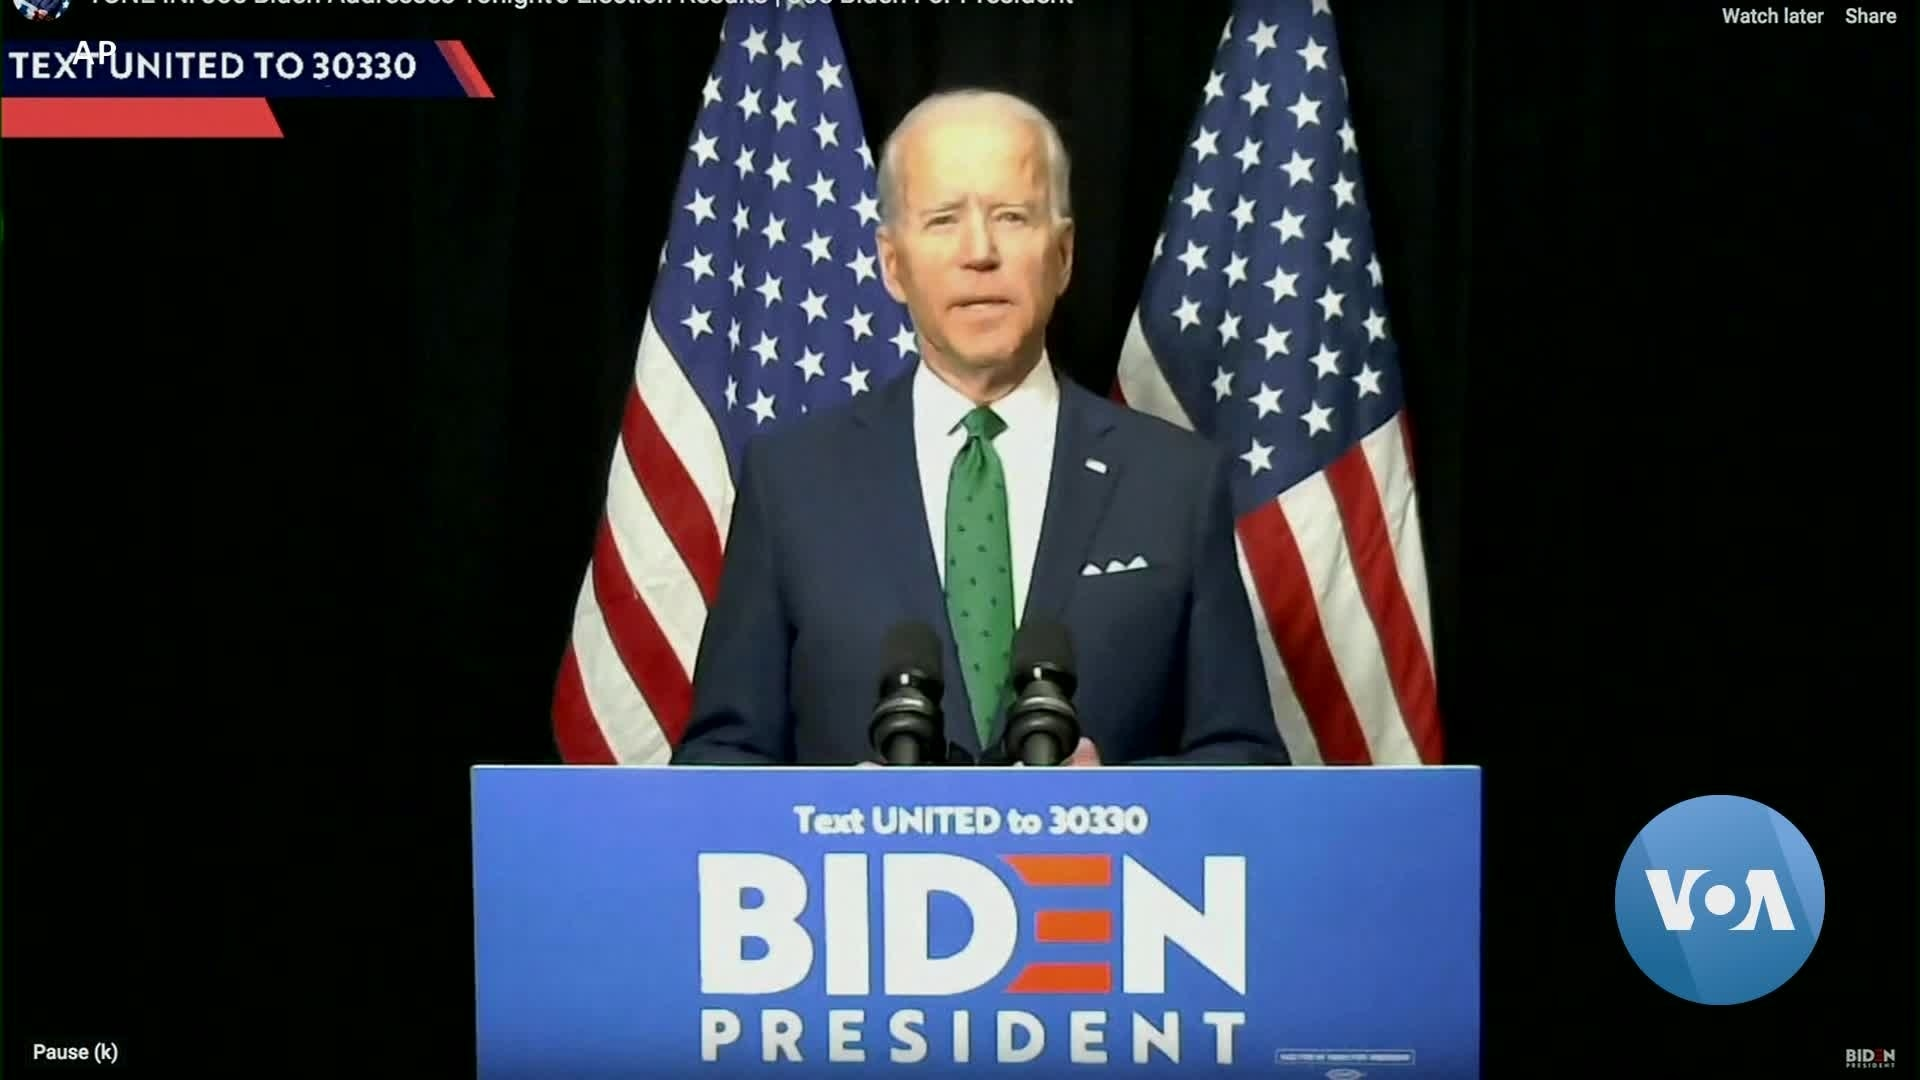 Biden Tightens Grip on Democratic Nomination with 3 More Primary Victories